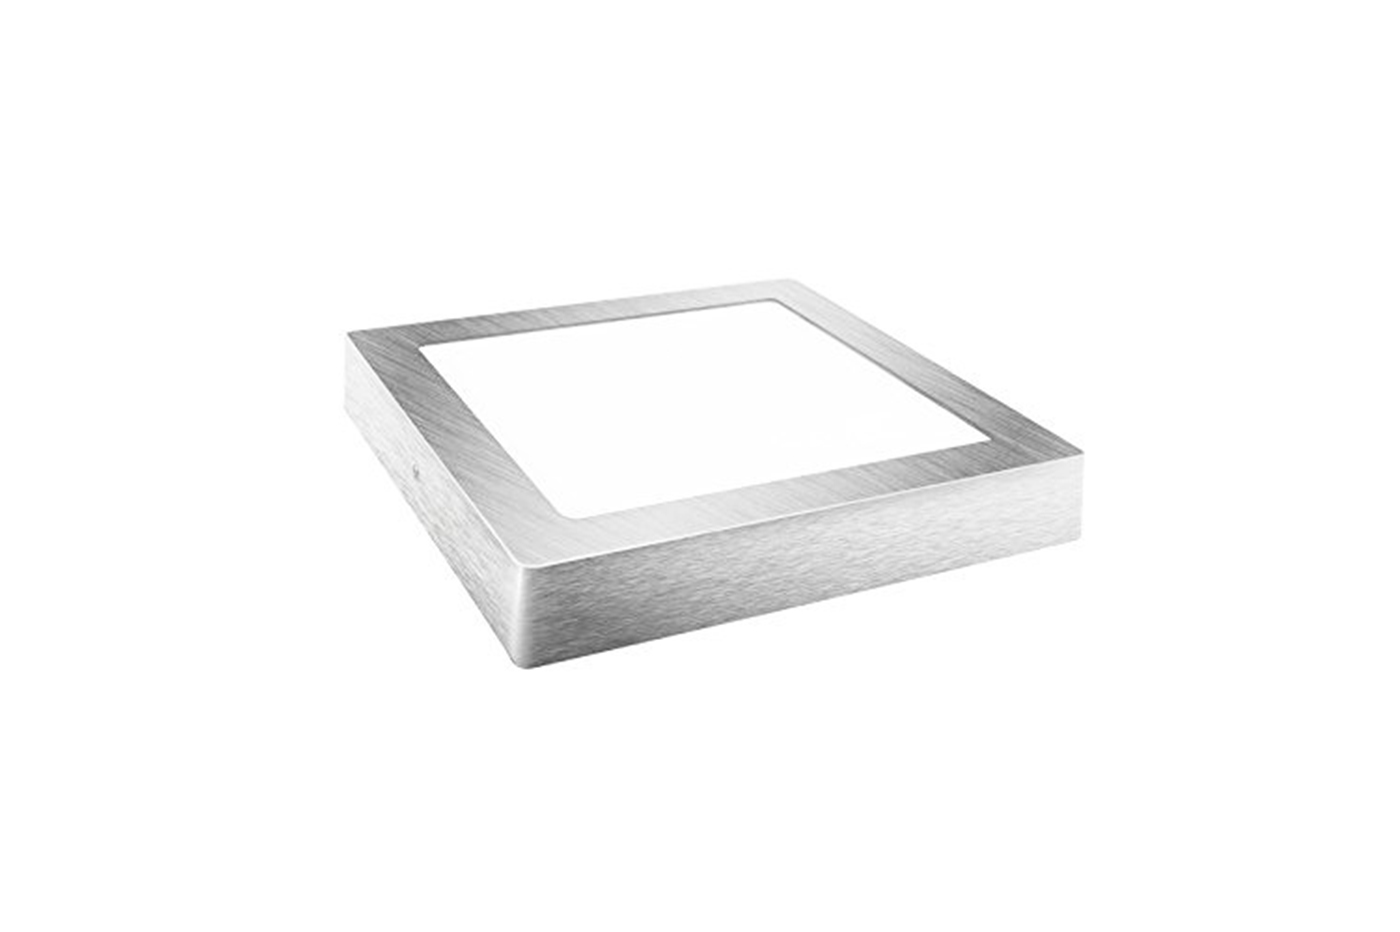 Plafoniere A Led Quadrata : Bes 25233 plafoniere beselettronica plafoniera soffitto led